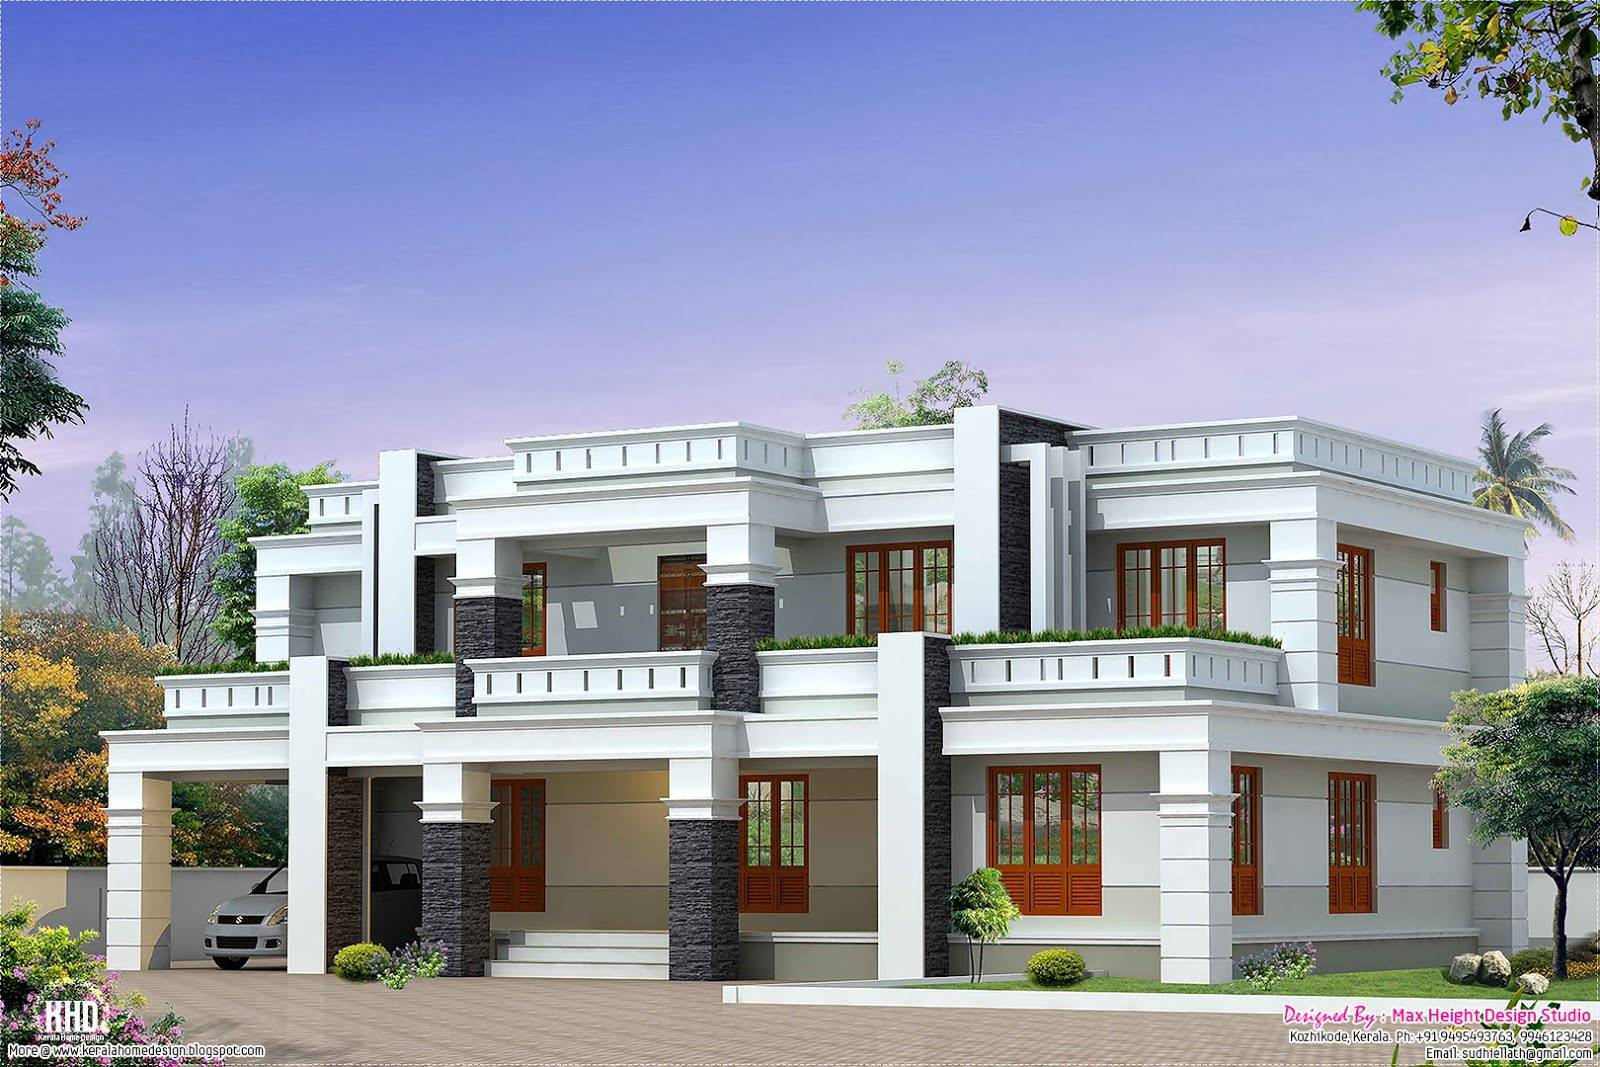 Double storey house plans photos home